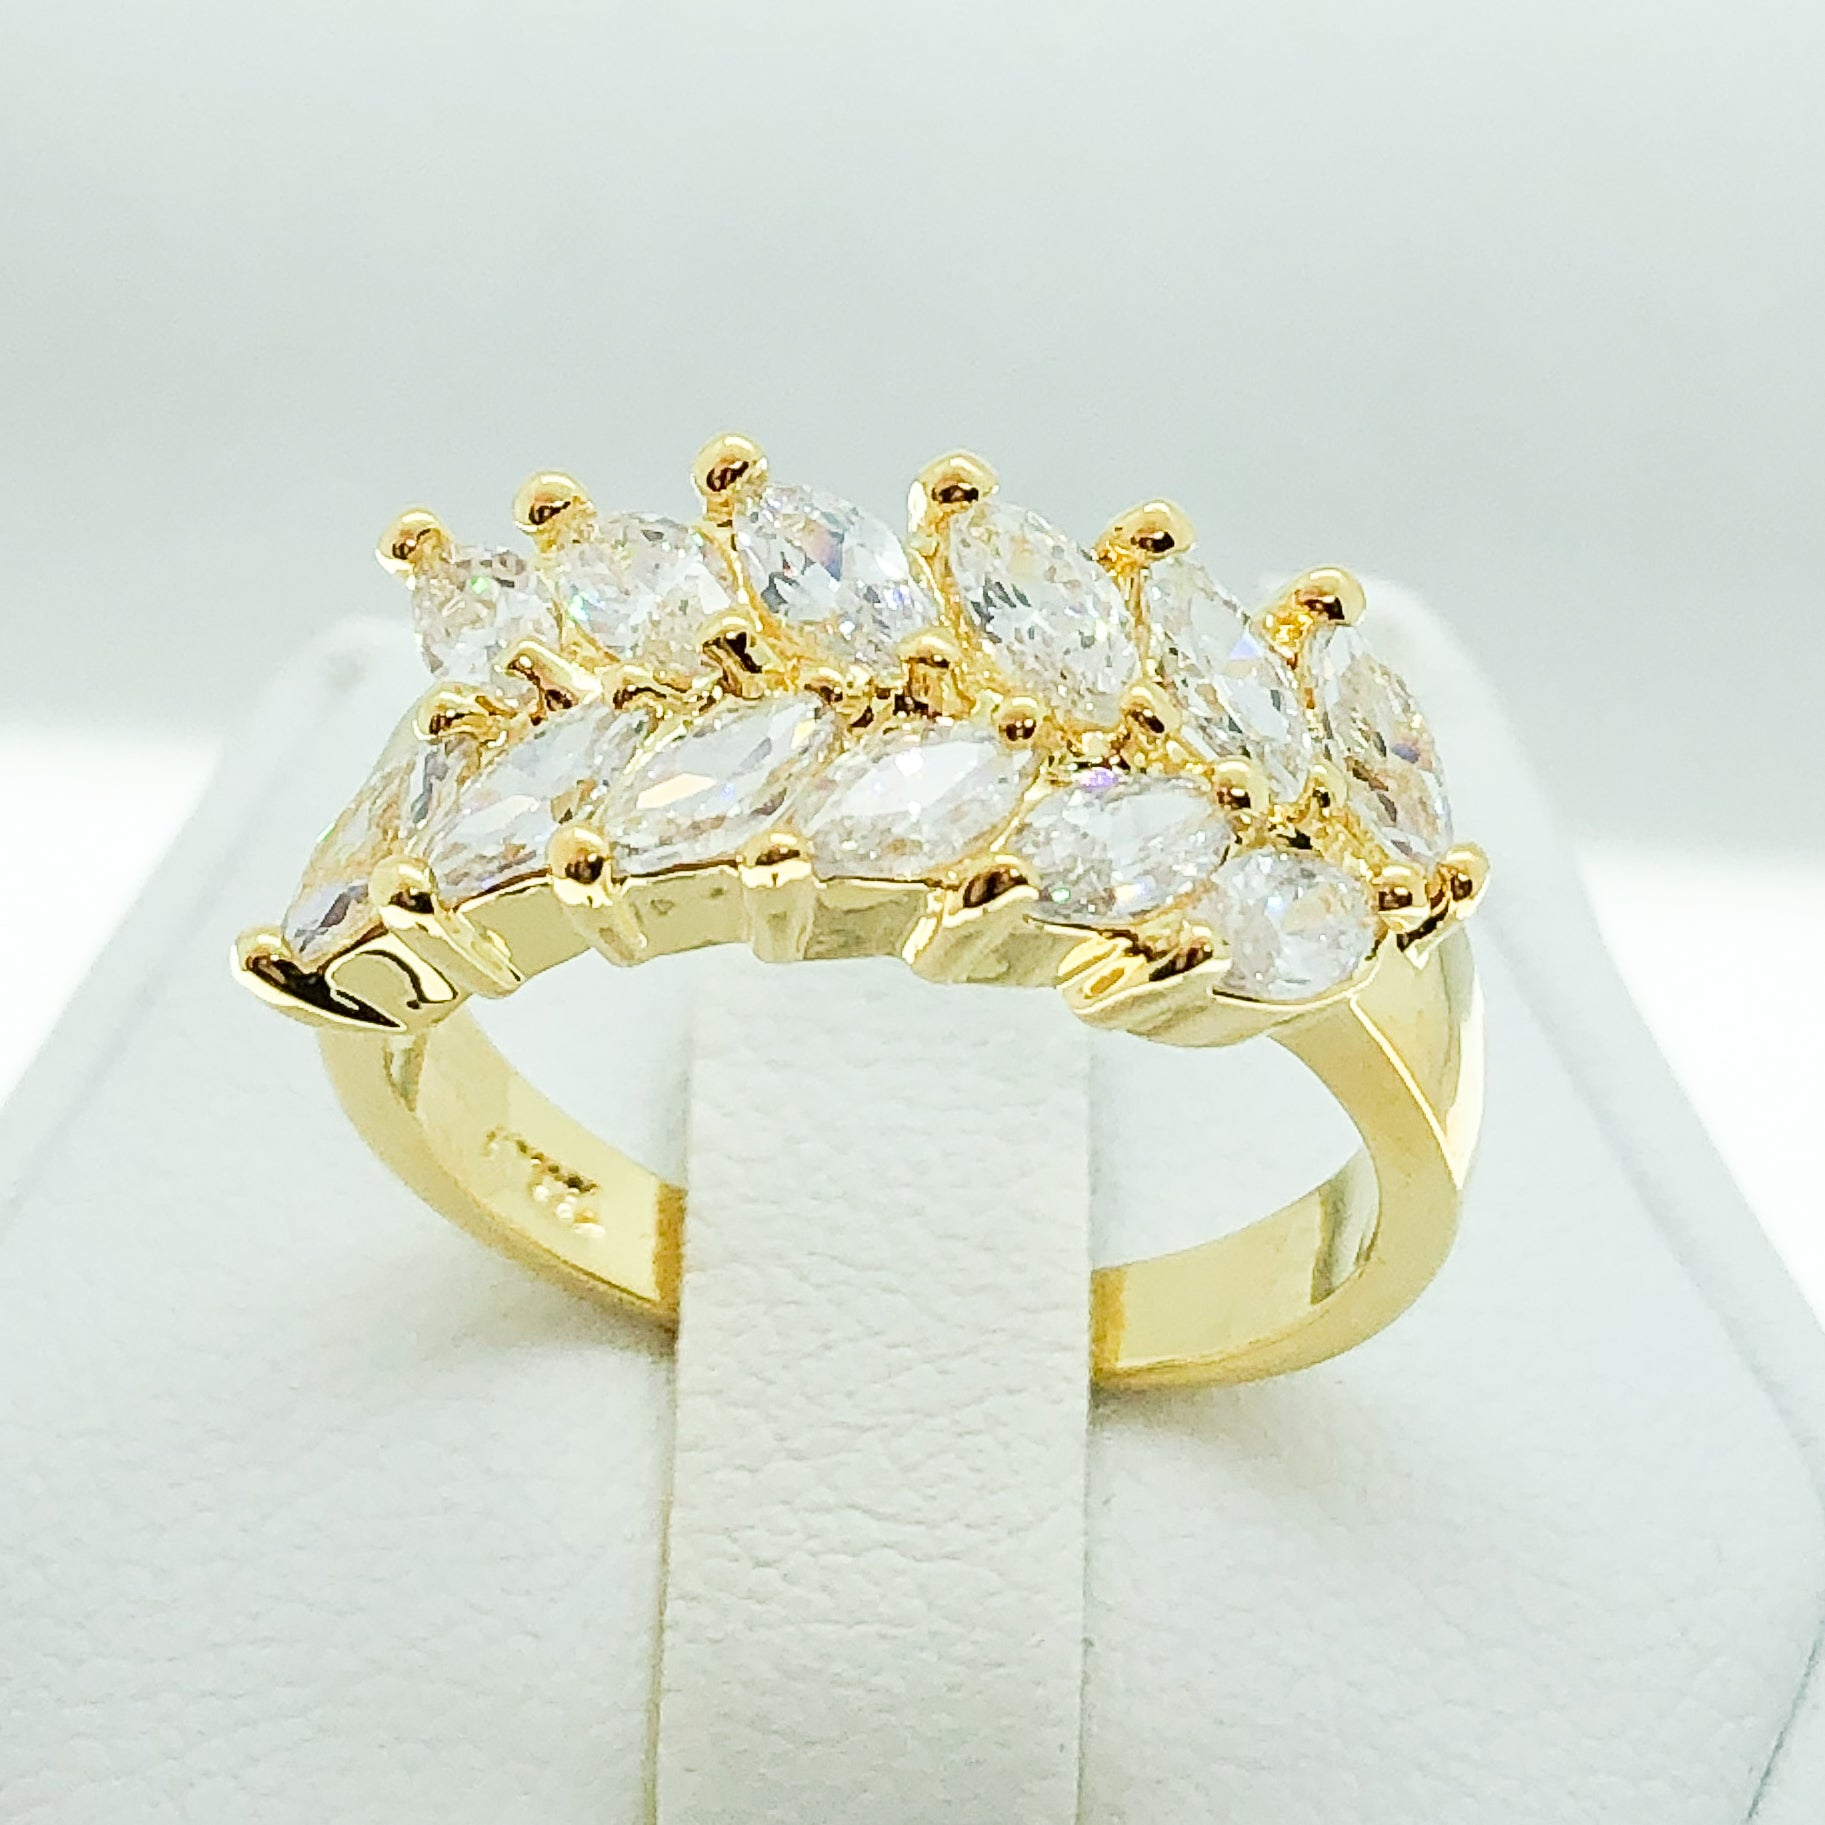 ID:R0317 Women Fashion Jewelry 18K Yellow Gold GF Sparkly Unique Design Cluster Cocktail Diamonique Ring Anniversary Promise Gift